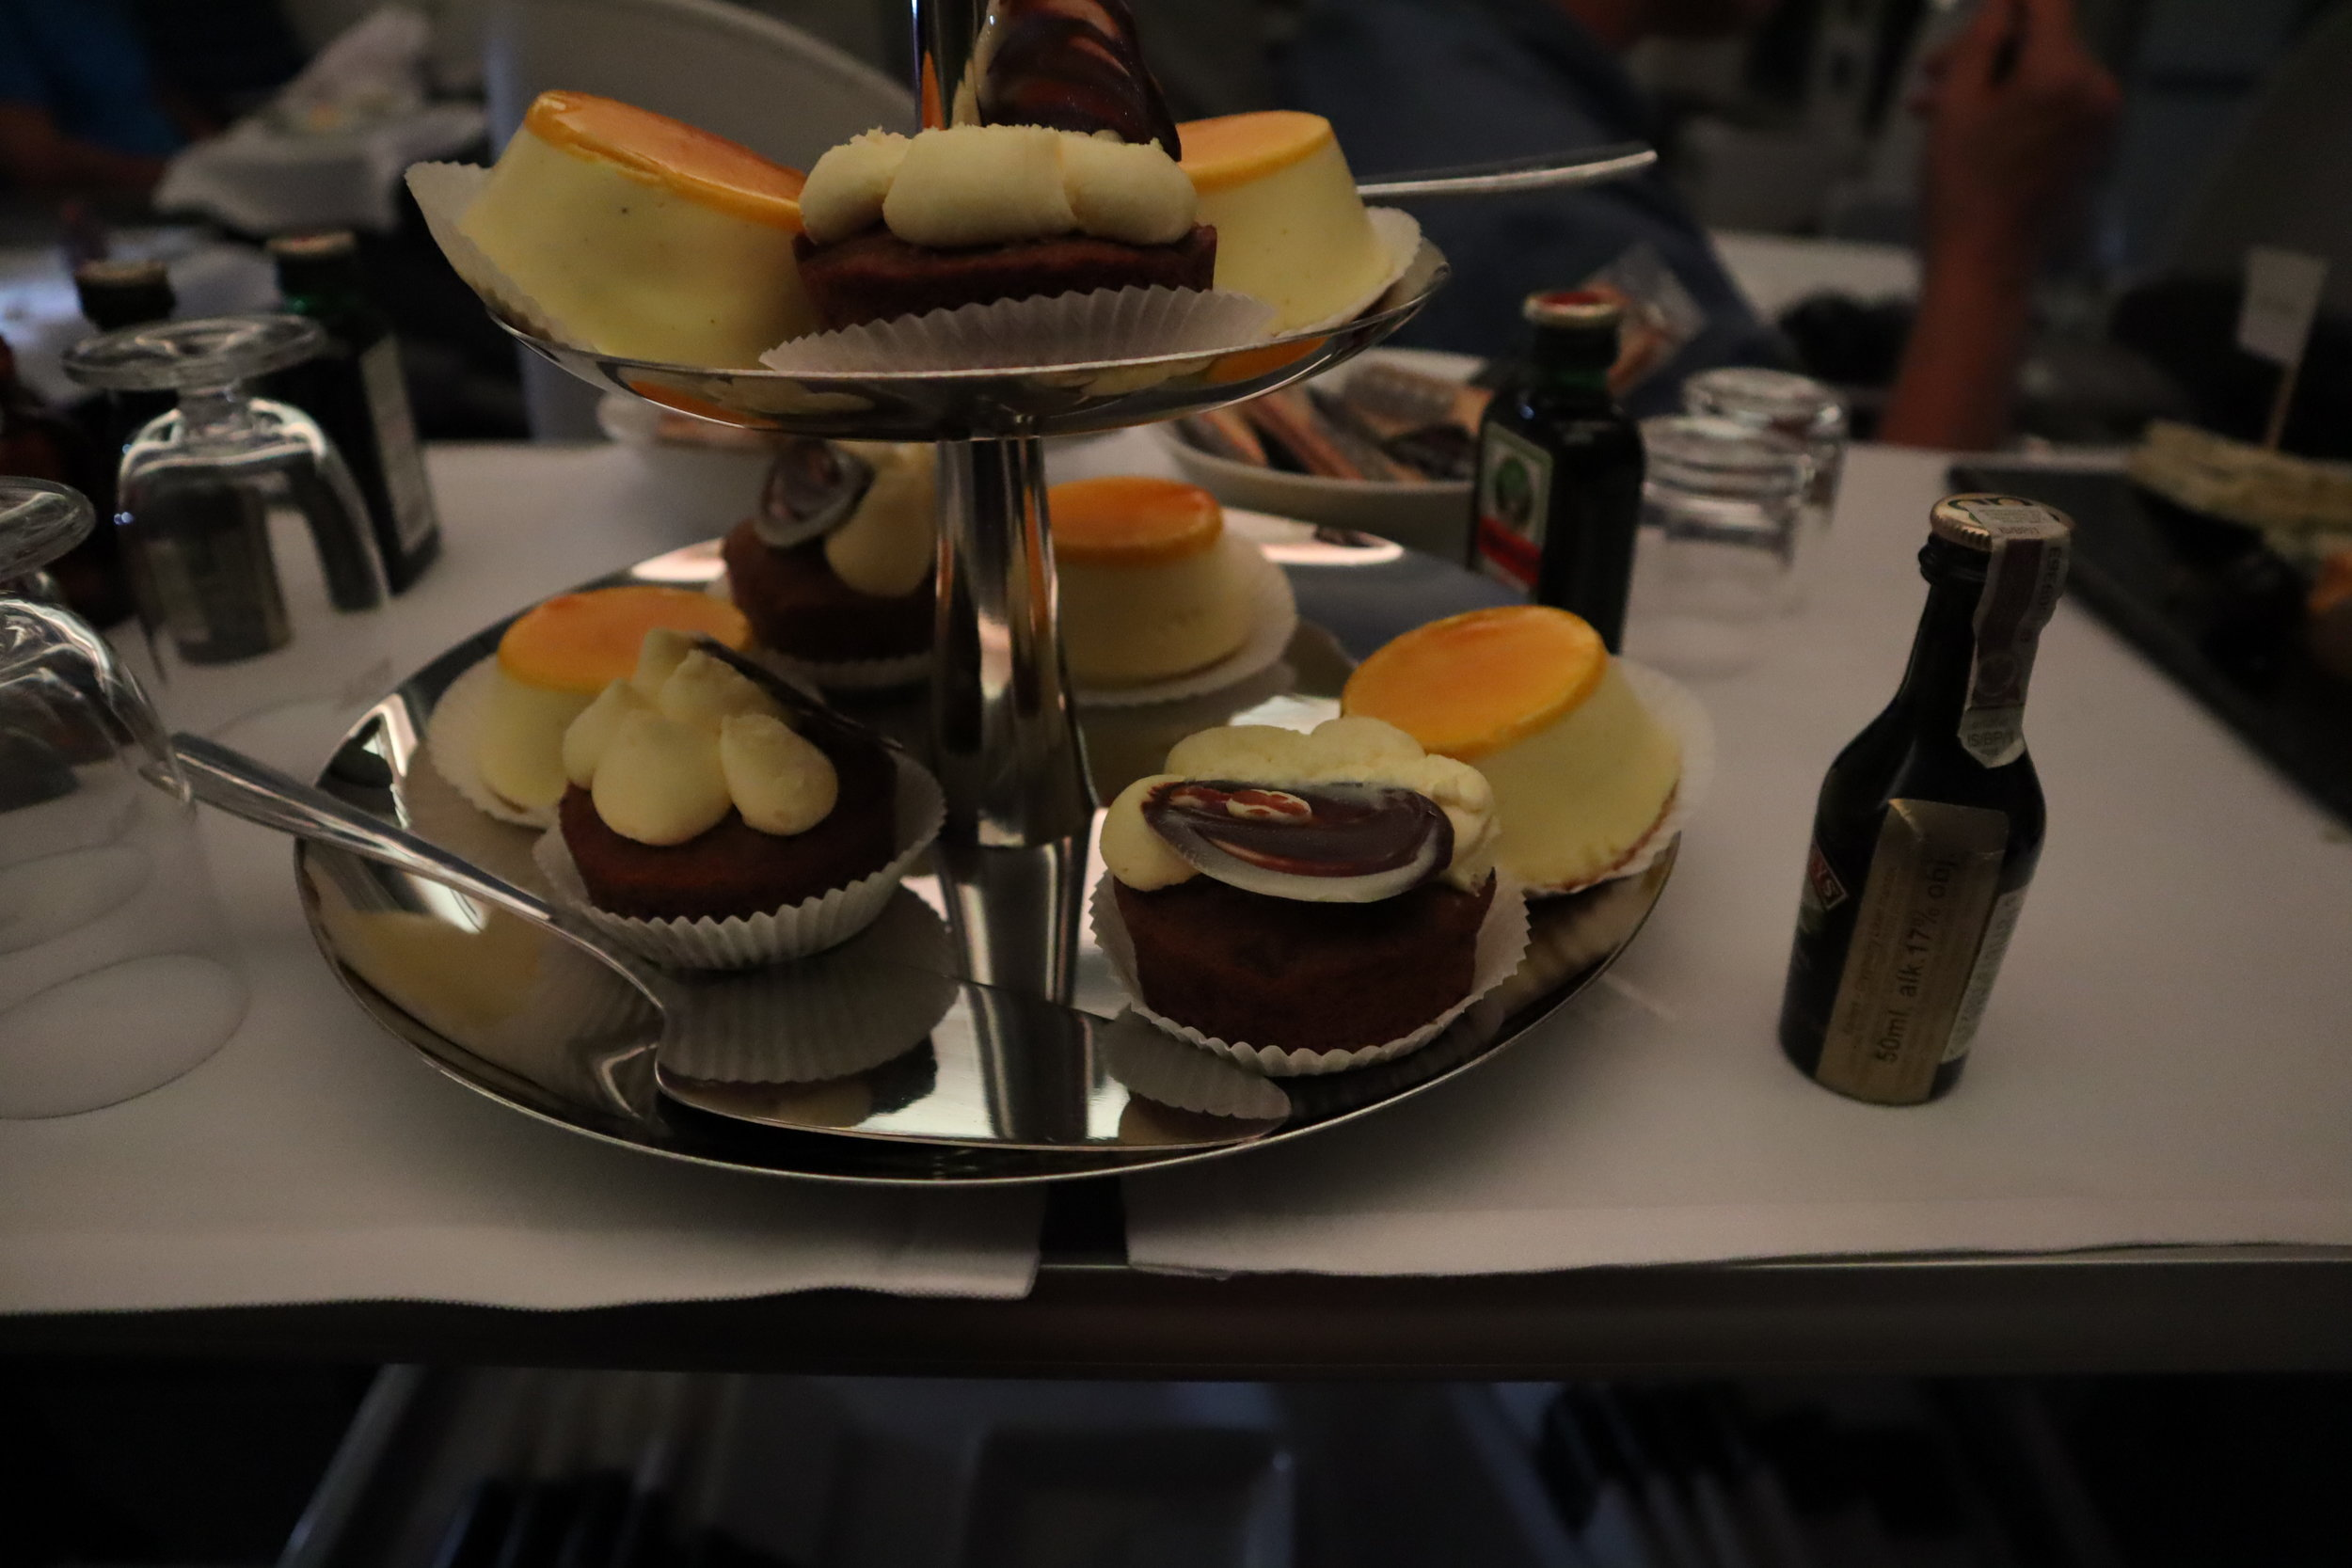 LOT Polish Airlines business class – Dessert cart